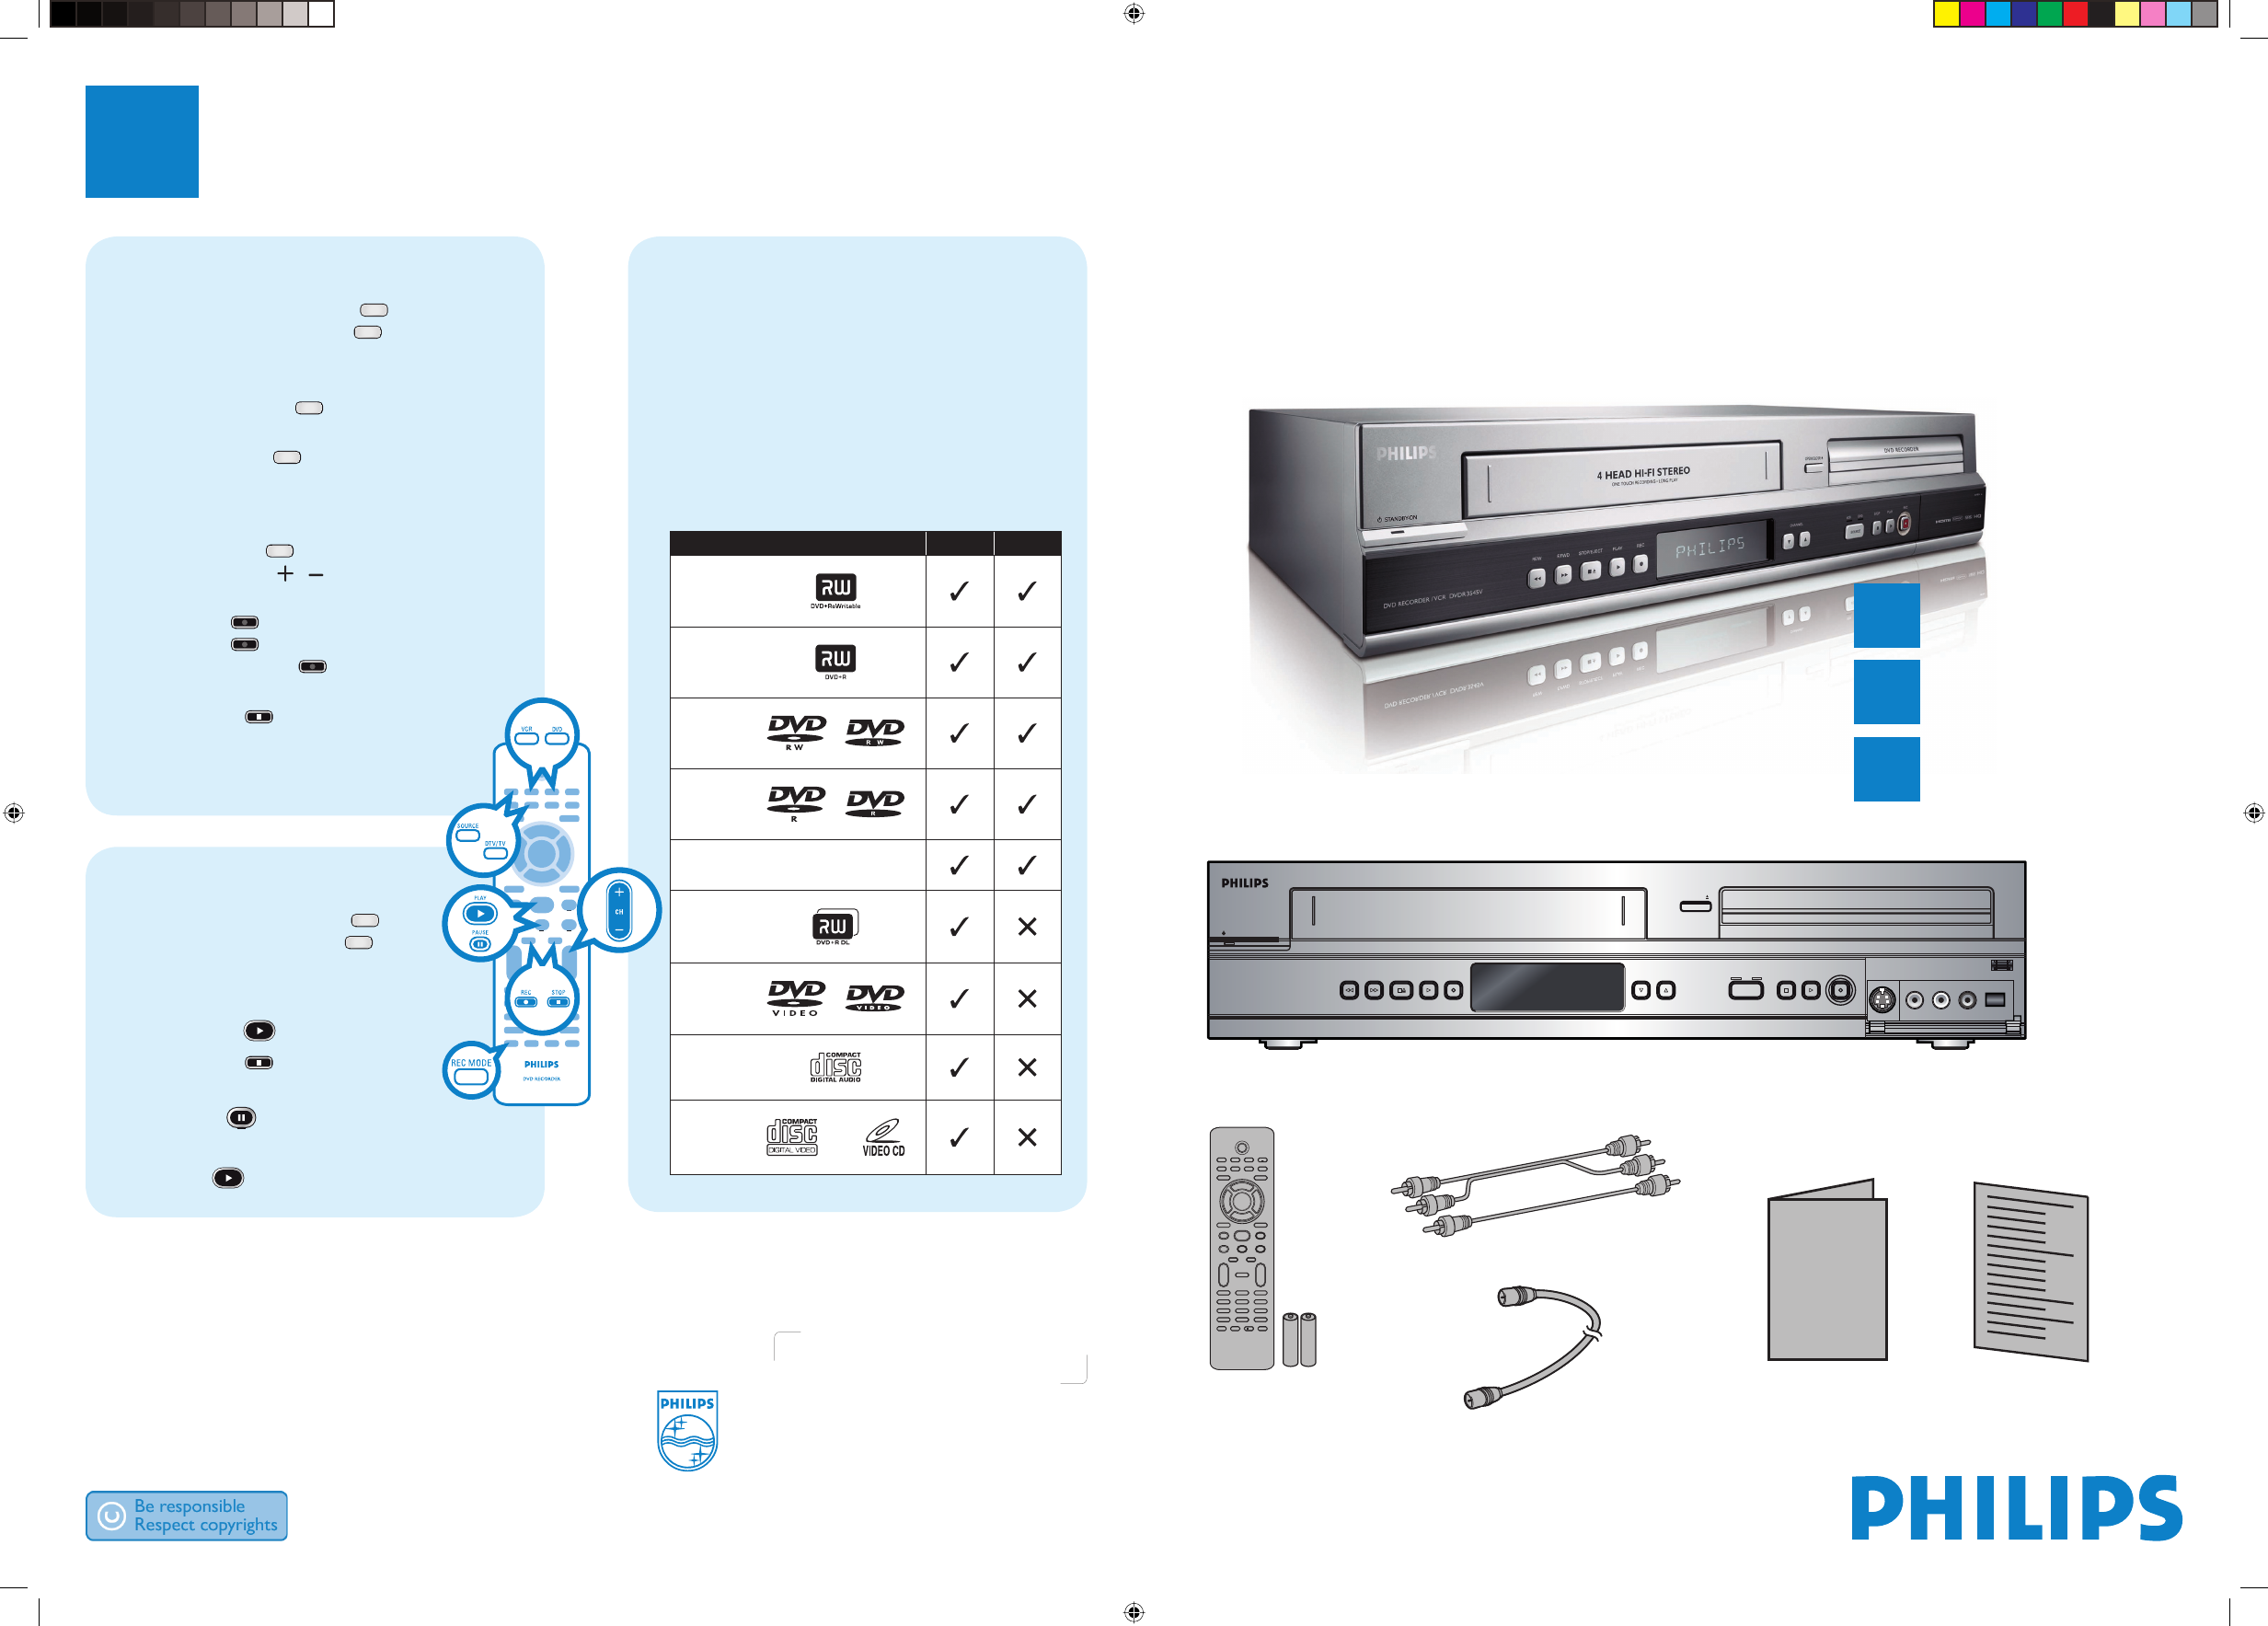 philips vcr dvdr3545v 37 user guide manualsonline com rh tv manualsonline com Philips Schematics Philips Product Manuals